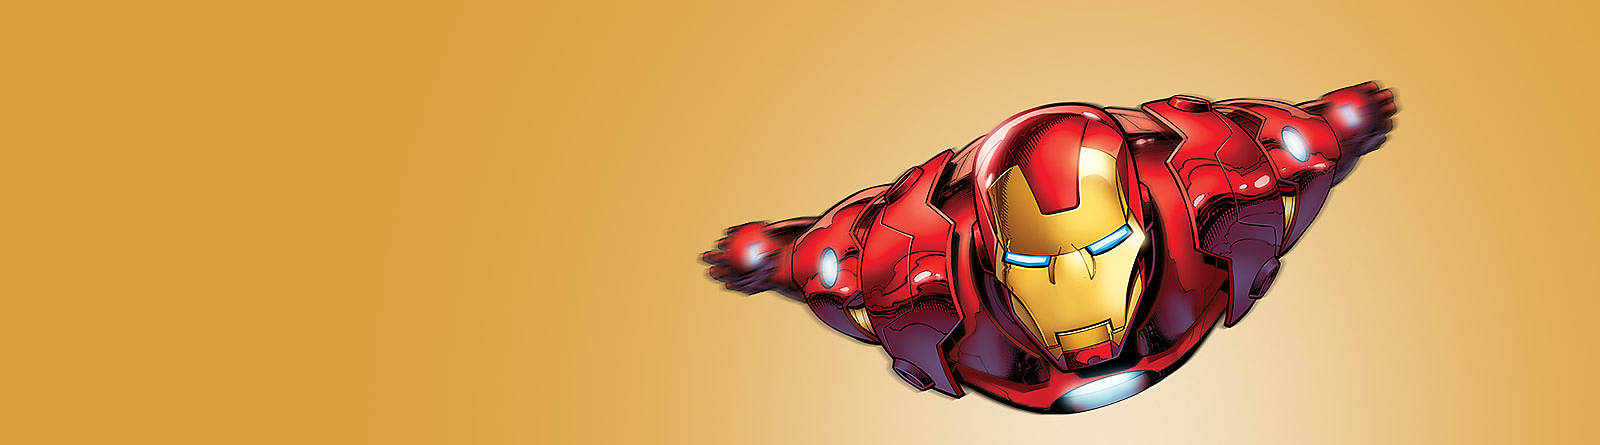 Iron Man Discover the exciting world of Marvel with our Iron Man merchandise, including figurines, clothing and toys